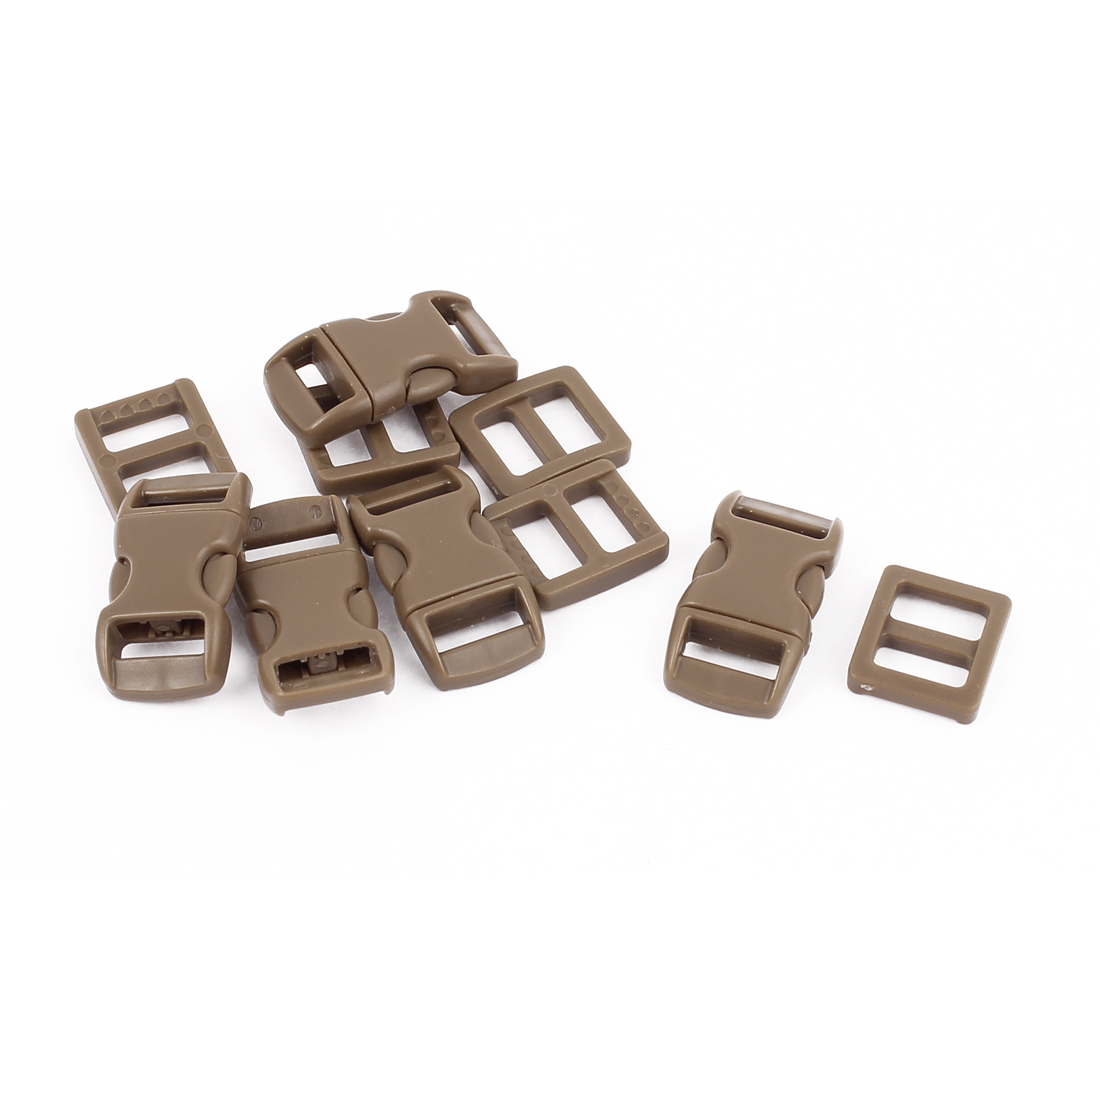 Plastic Packbag Side Quick Release Clasp Buckles 10-11mm Webbing Band 5pc